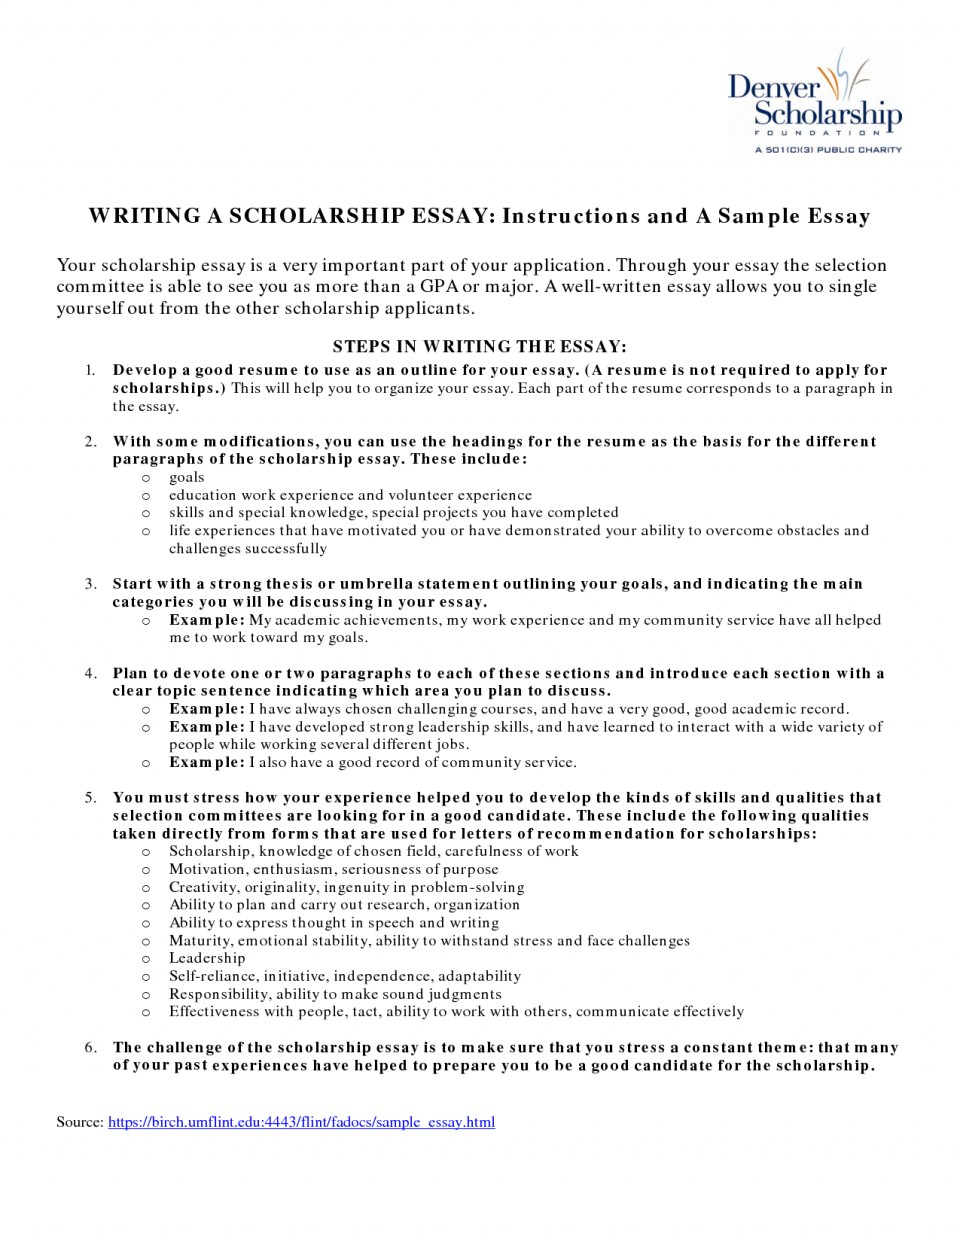 023 Essay Example What To Write For Scholarship About Yourself On Tips Writing Effective Essays Awesome A How Introduction That Stands Out Your Career Goals 960